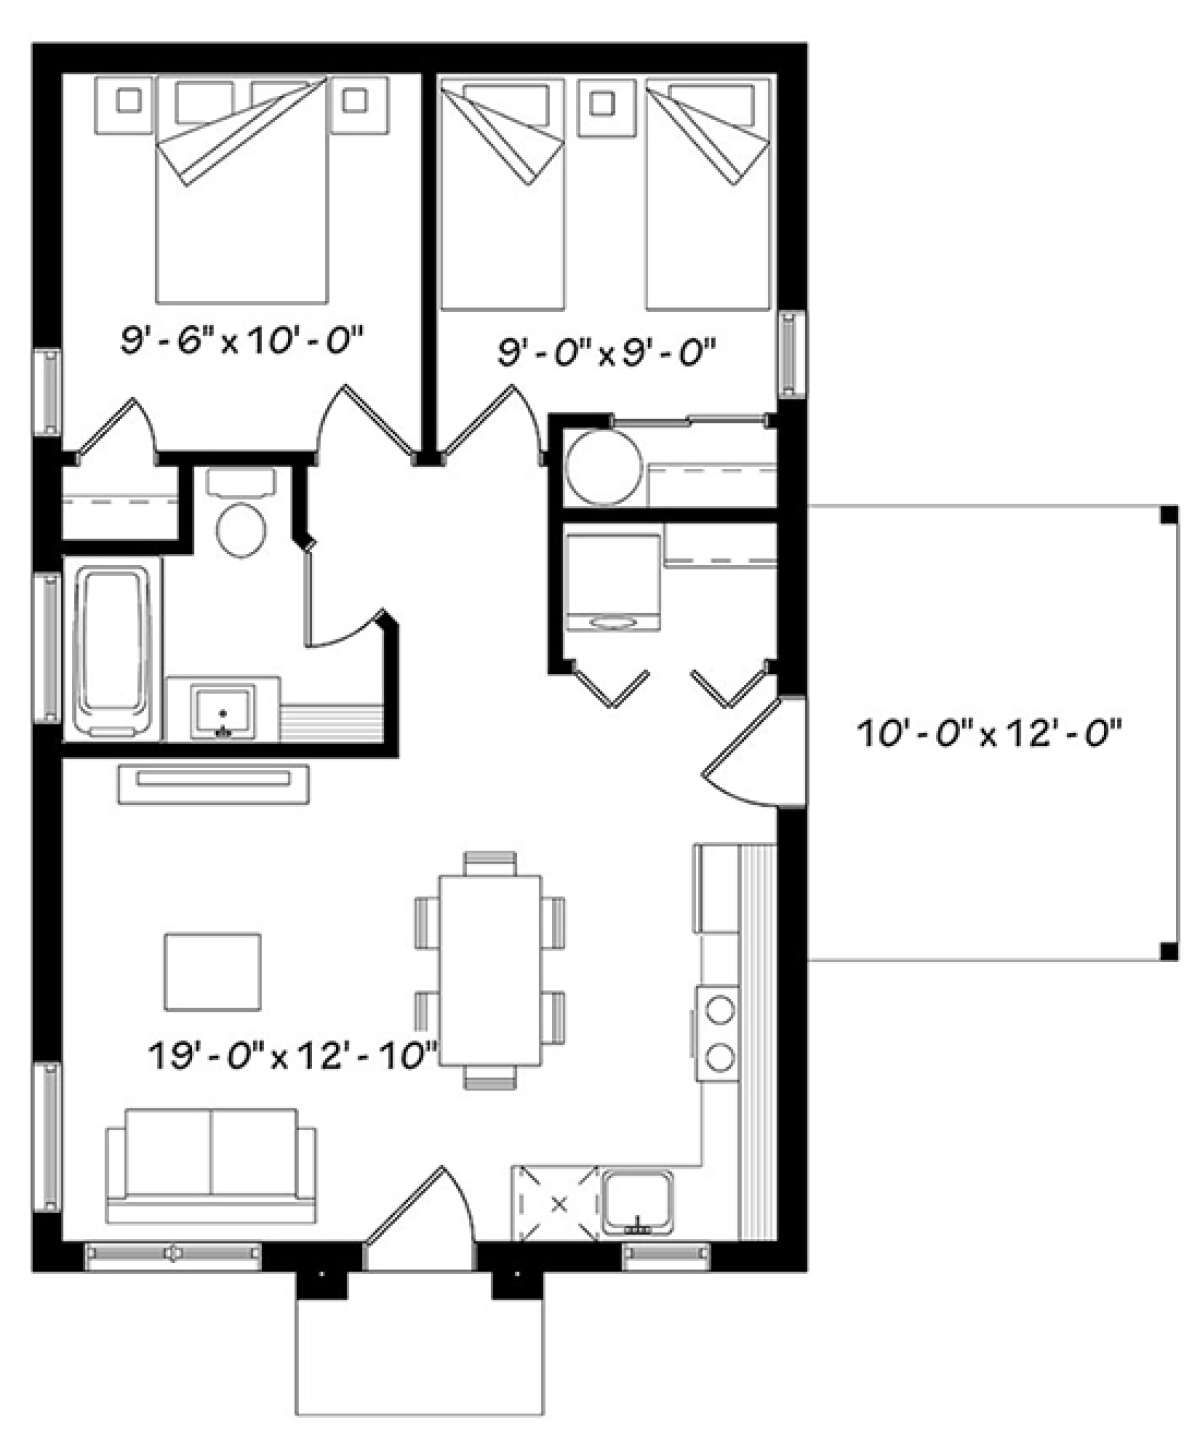 House Plan 034 01076 Contemporary Plan 640 Square Feet 2 Bedrooms 1 Bathroom In 2021 Cabin Floor Plans House Plans Small Apartment Plans